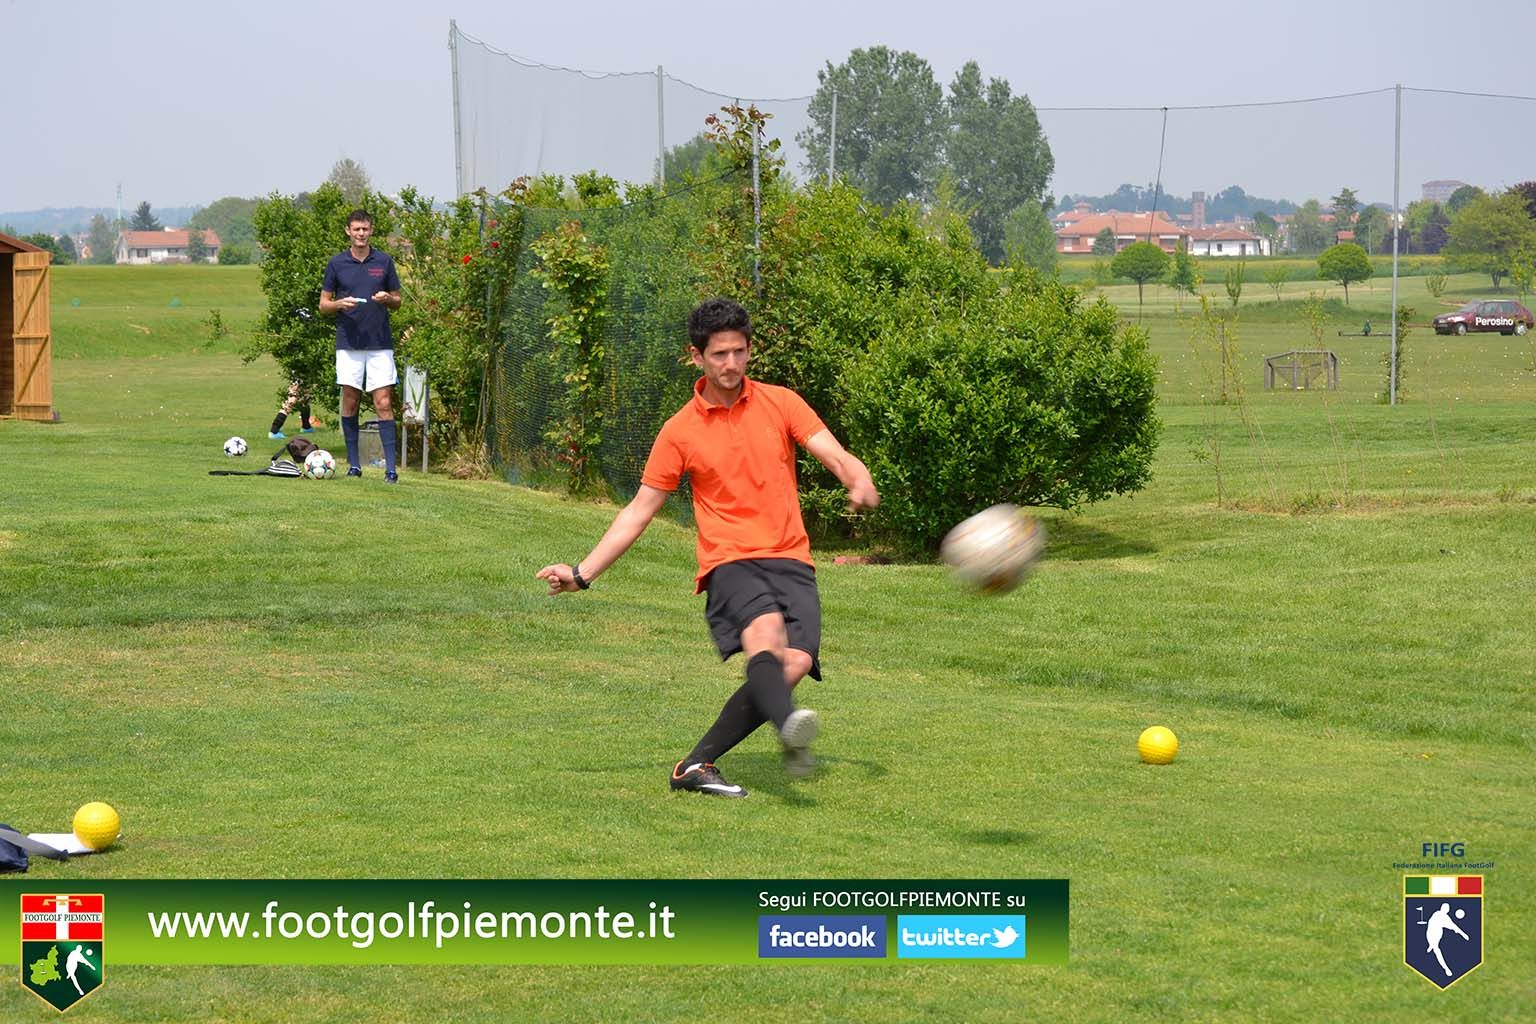 FOTO 9 Regions' Cup Footgolf Piemonte 2016 Golf Città di Asti (At) 30apr16-56